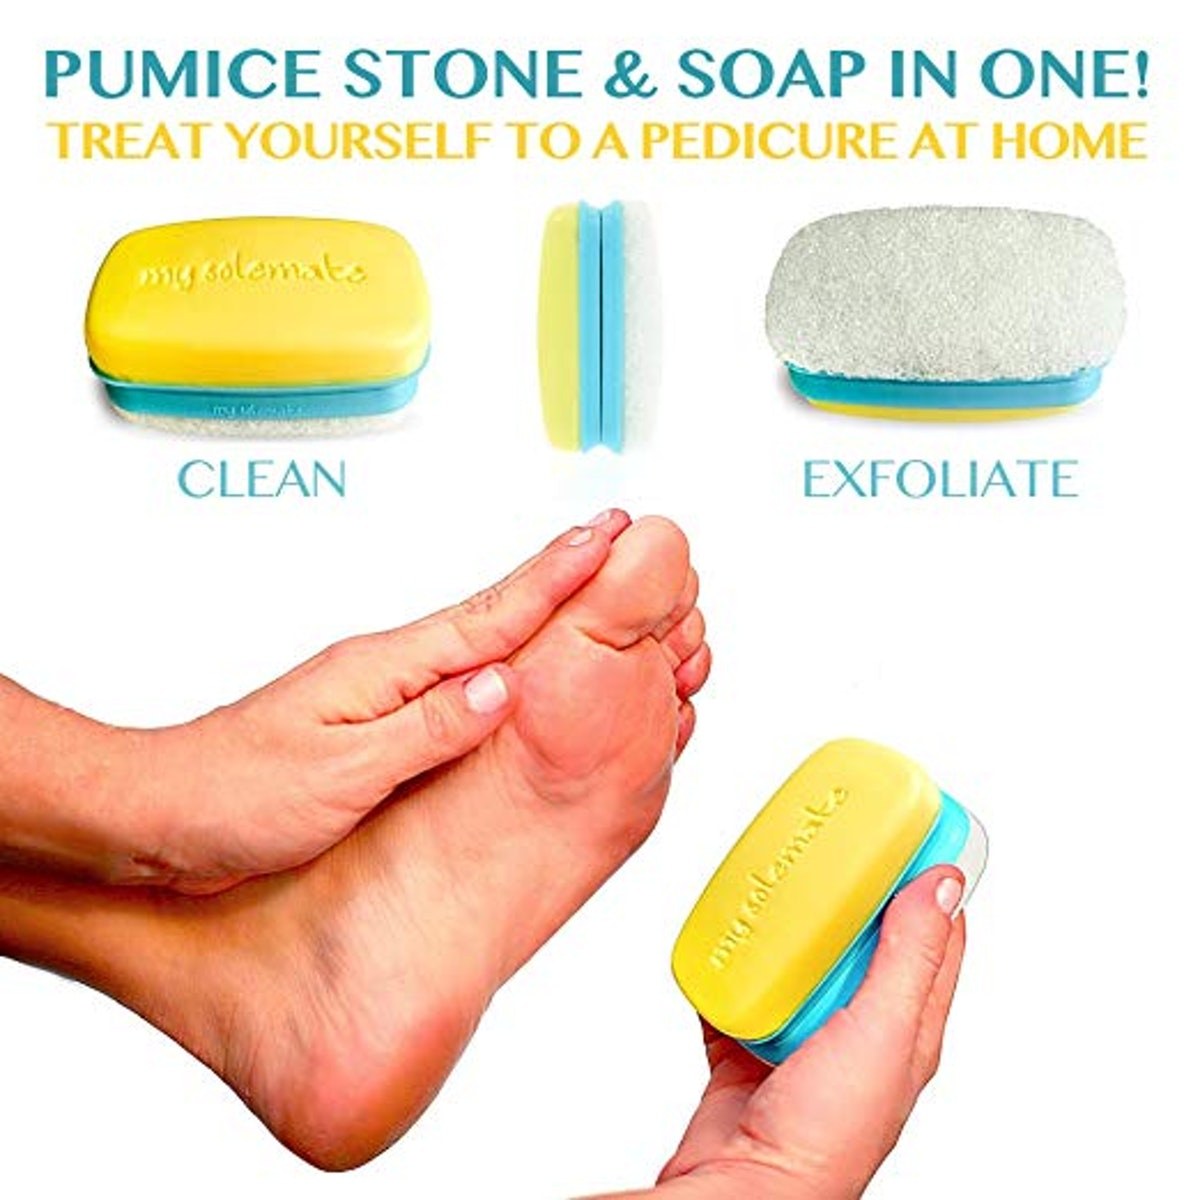 My Solemate 2 in 1 Foot Scrubber And Callus Remover